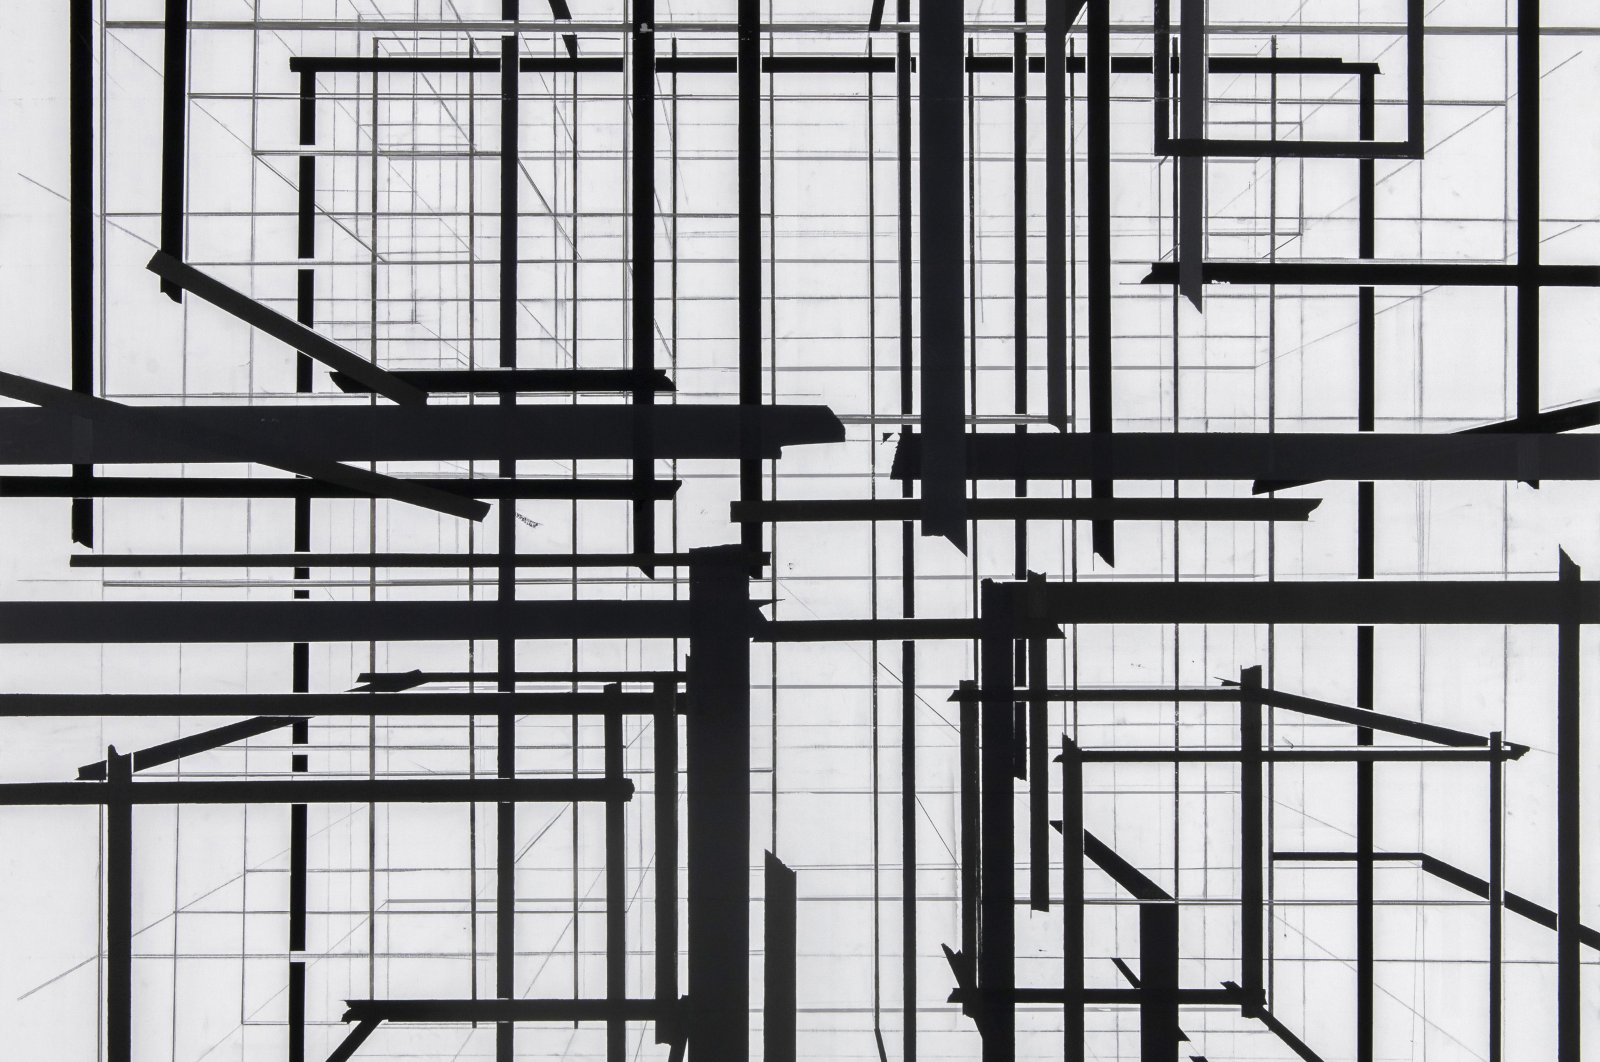 """Nuri Kuzucan, """"Perspective,"""" 2020, acrylic on canvas, 195 by 185 centimeters (photo courtesy of Galerist)."""